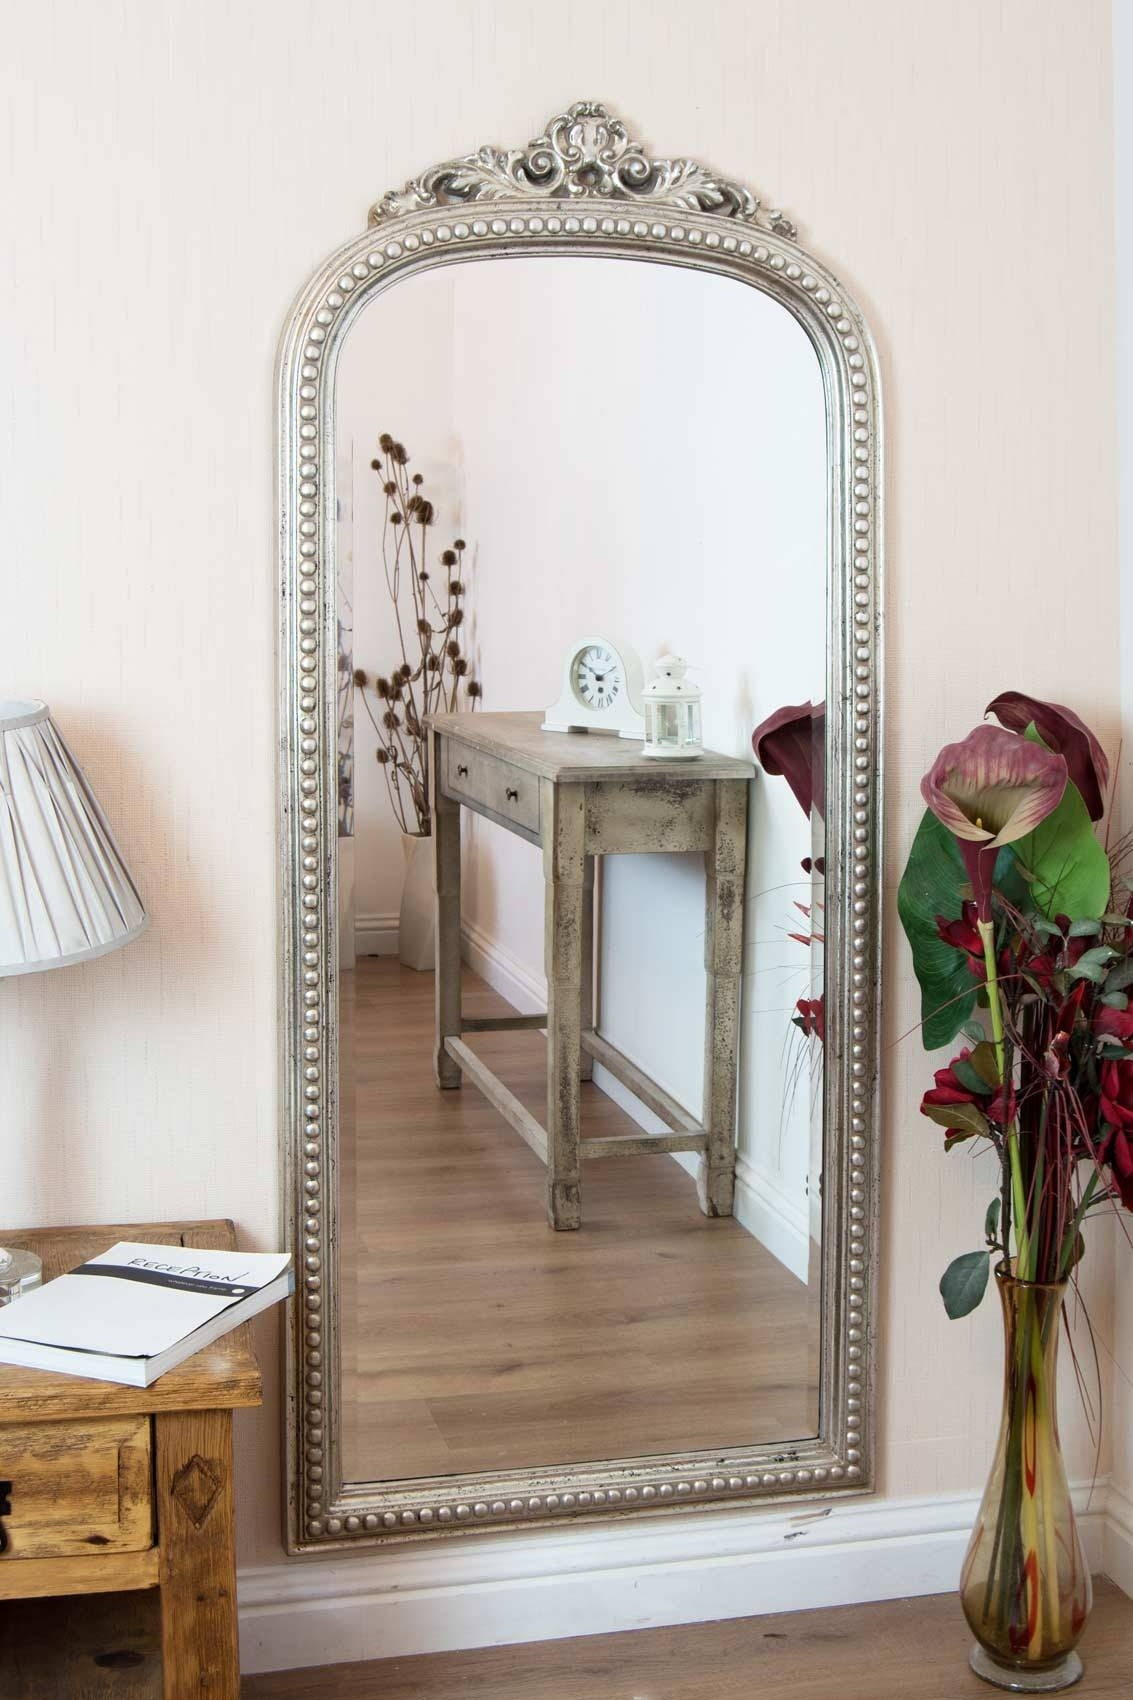 Antique Full Length Wall Mirrors Antique Wood Framed Wall Mirrors inside Antique Style Wall Mirrors (Image 2 of 25)